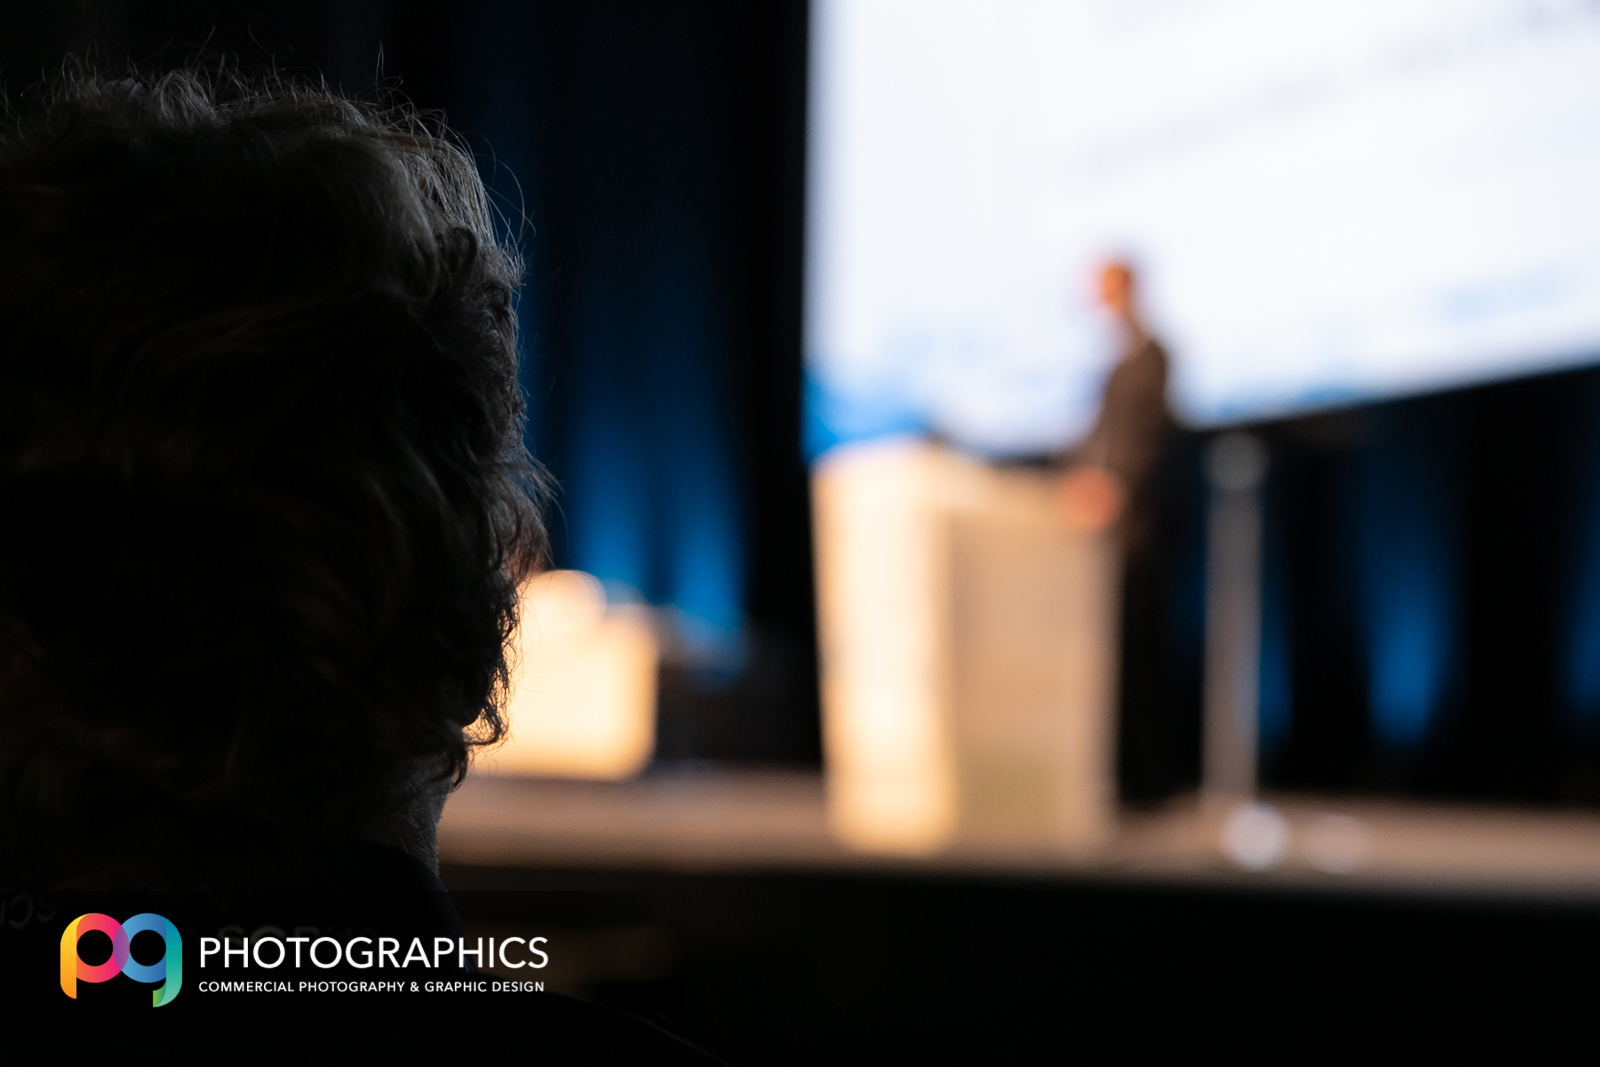 Conference-event-photography-glasgow-edinburgh-Lausanne-7.jpg